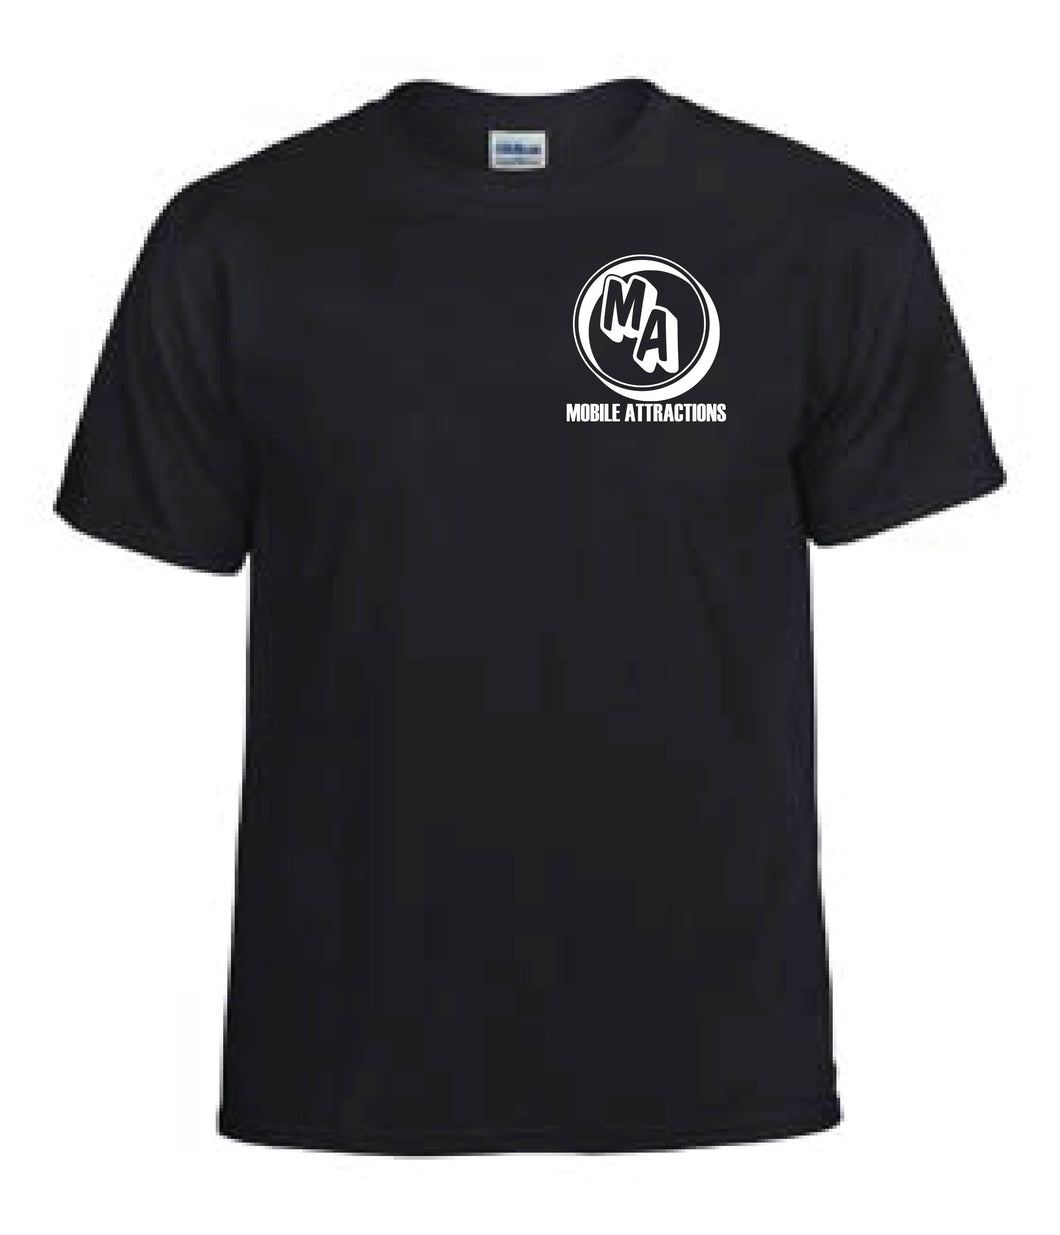 Mobile Attractions Inc T-Shirt